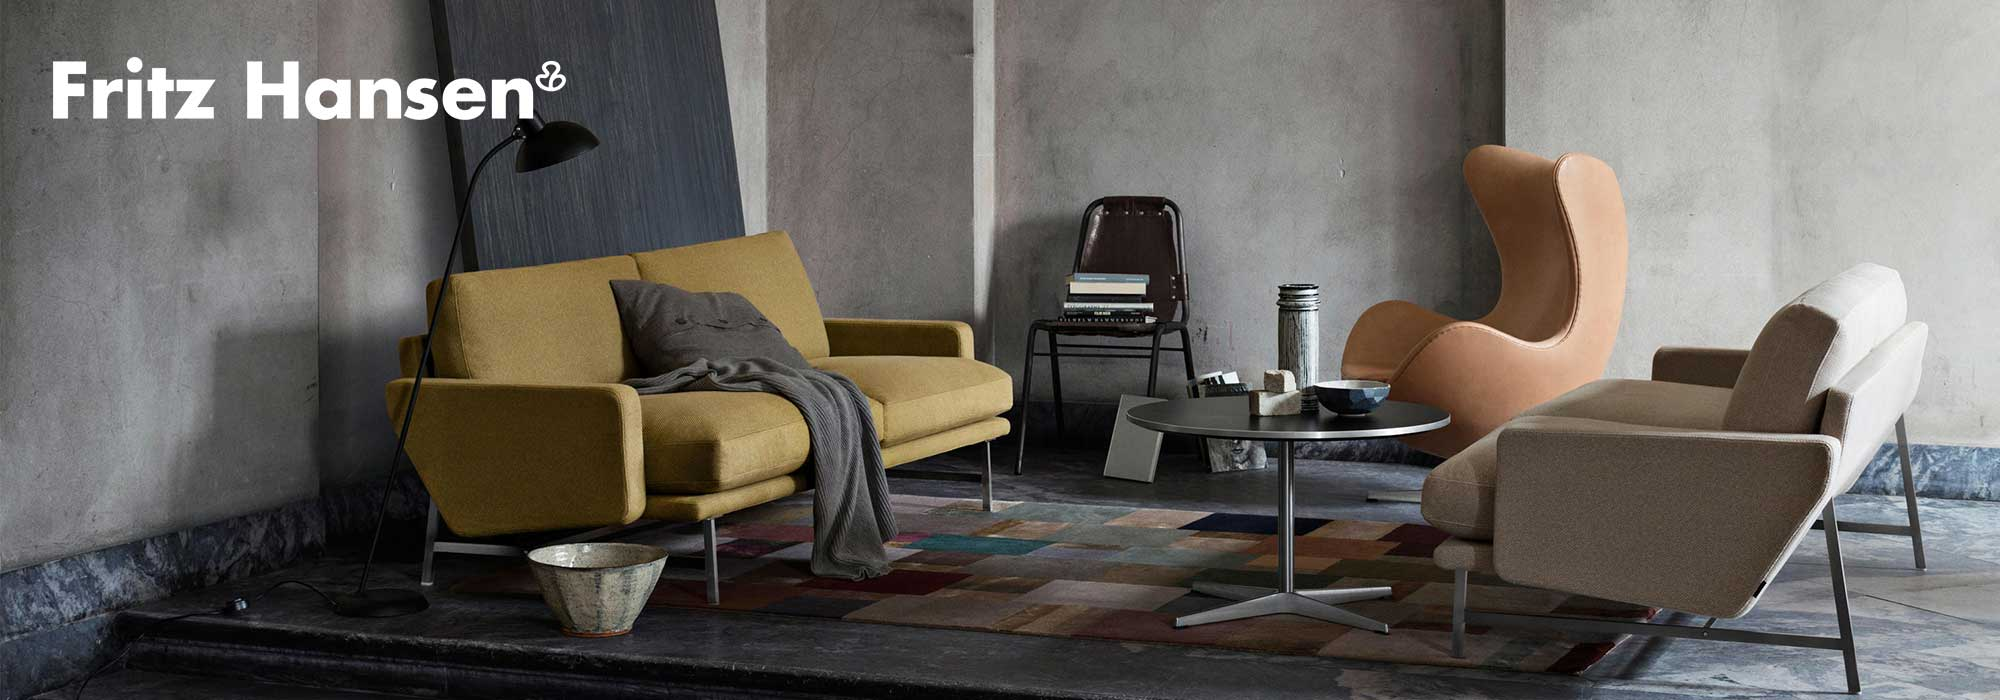 Fritz Hansen Brand At Think Furniture